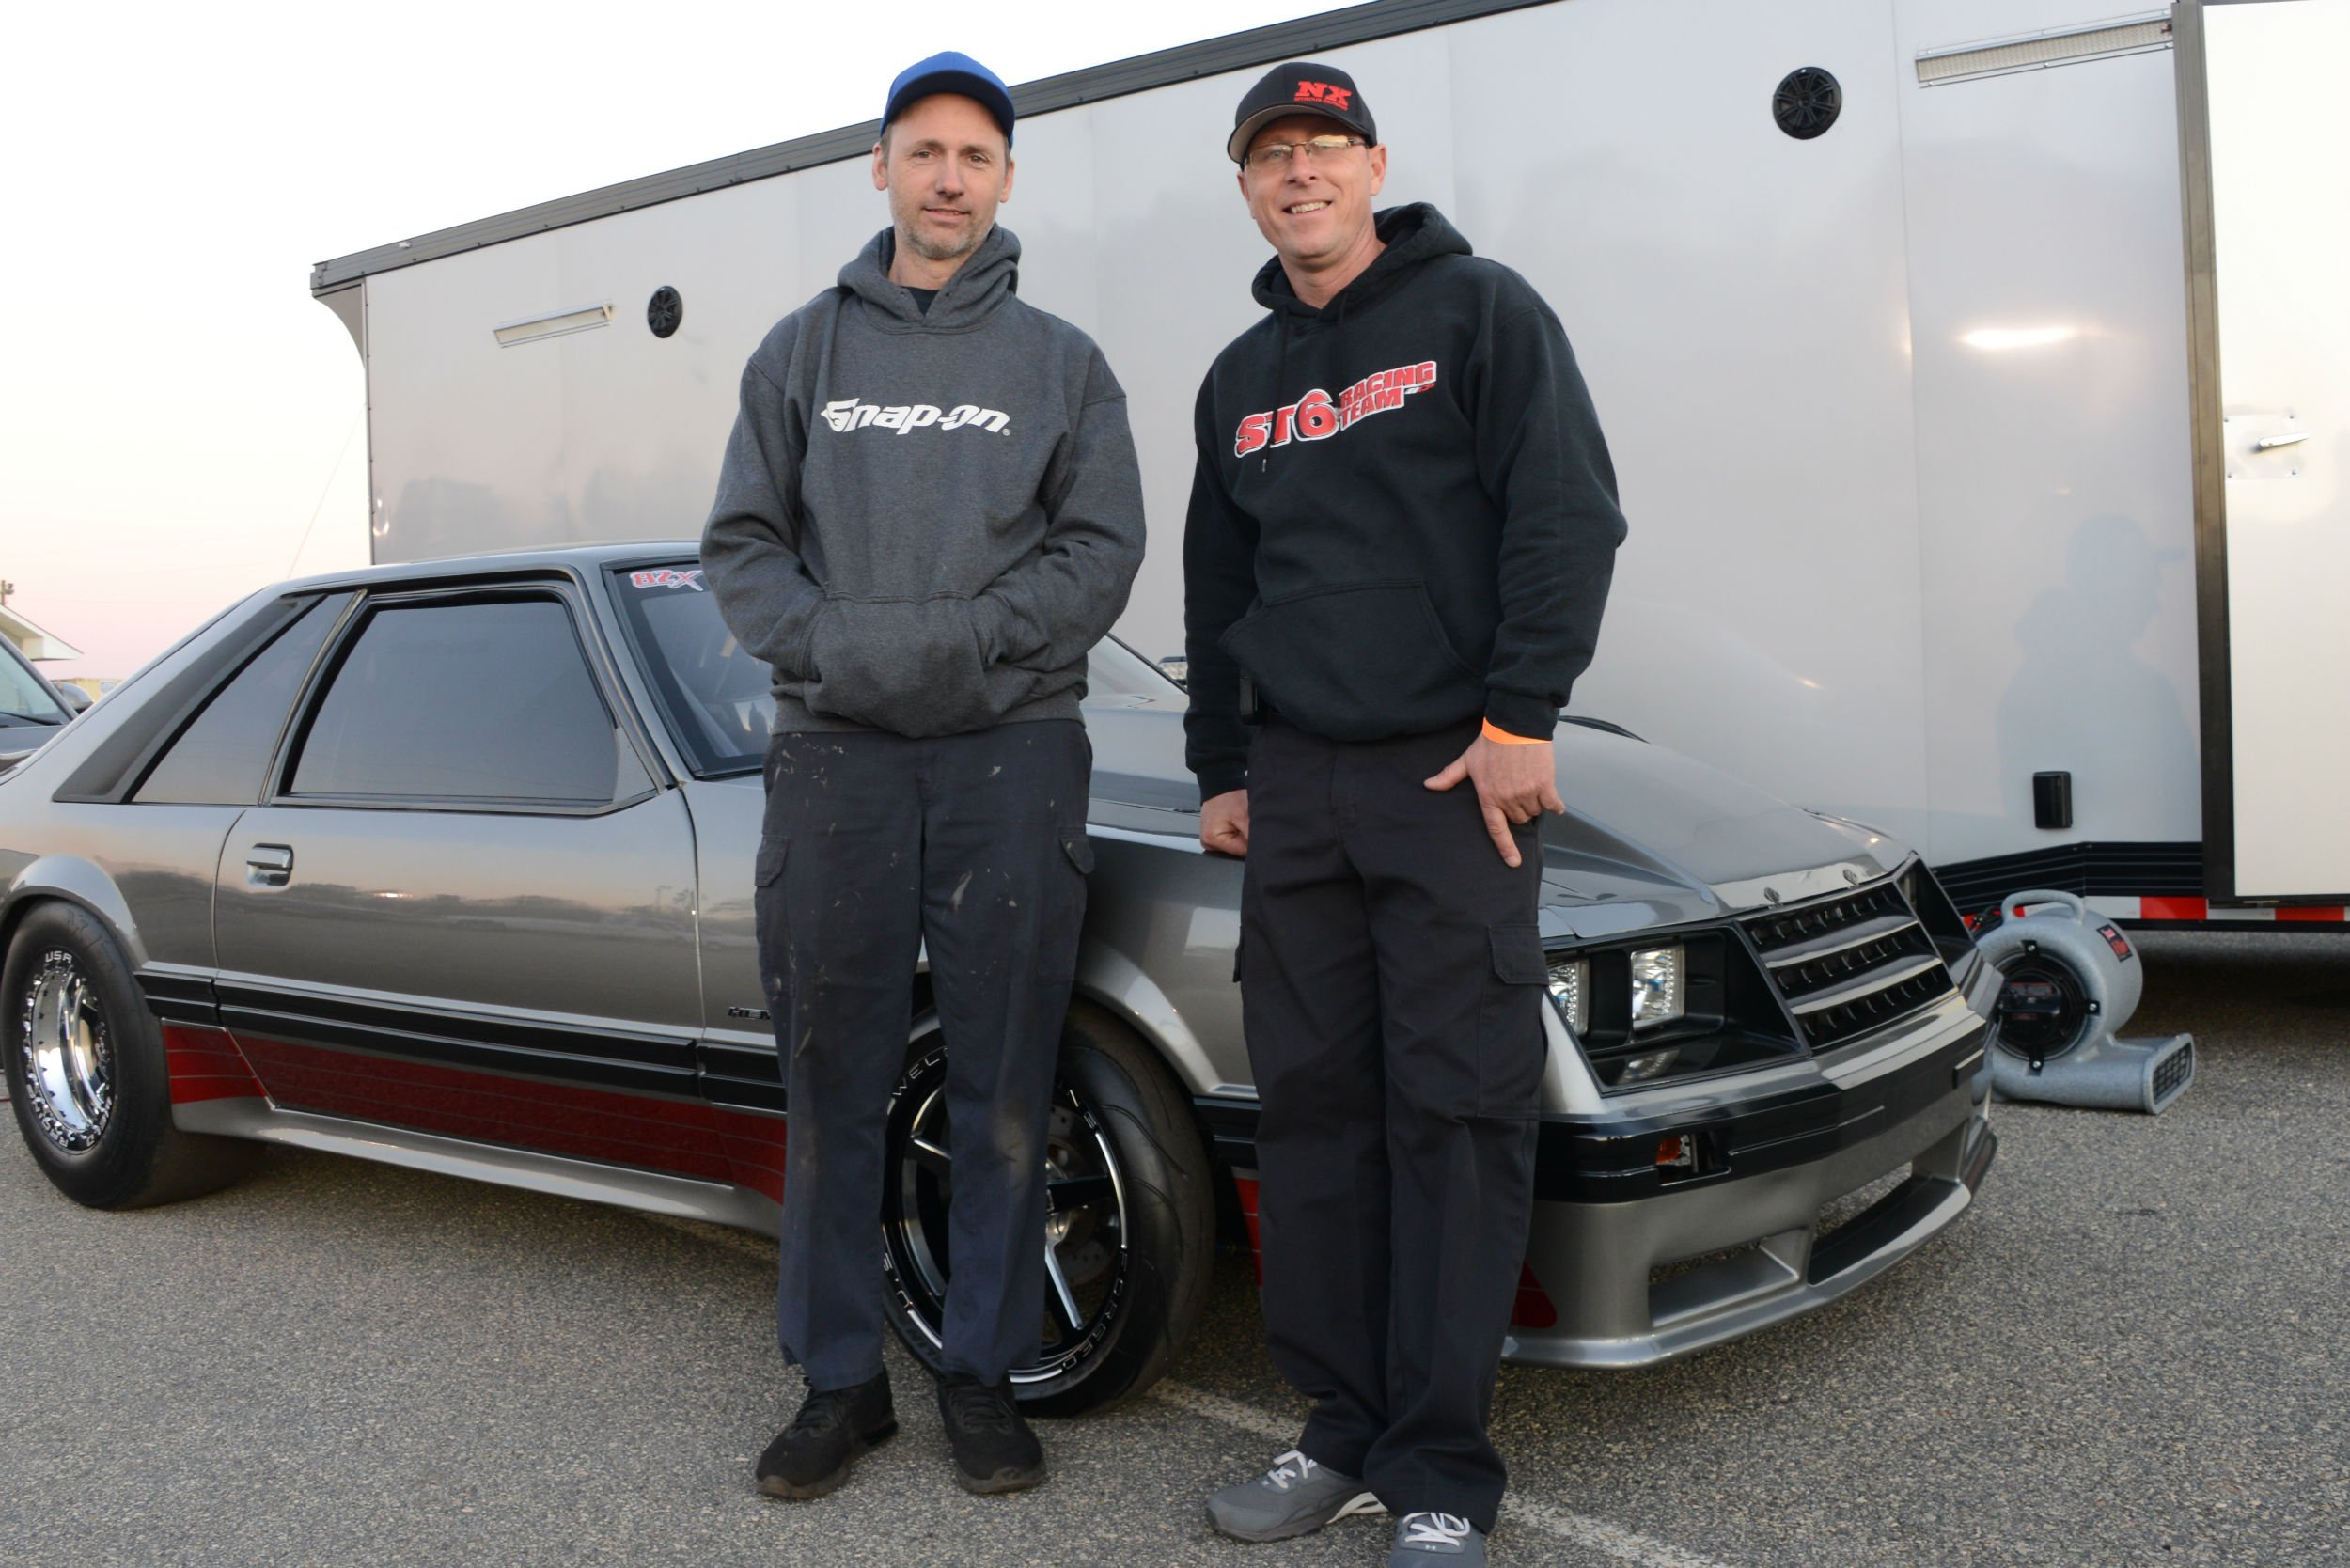 The Atlanta Grudge racing faithful flock to the Fox-body. Accomplished constructor/tuner Scott Milner (left) and gifted competitor Jonathan May with an HPE Hemi-powered small-block